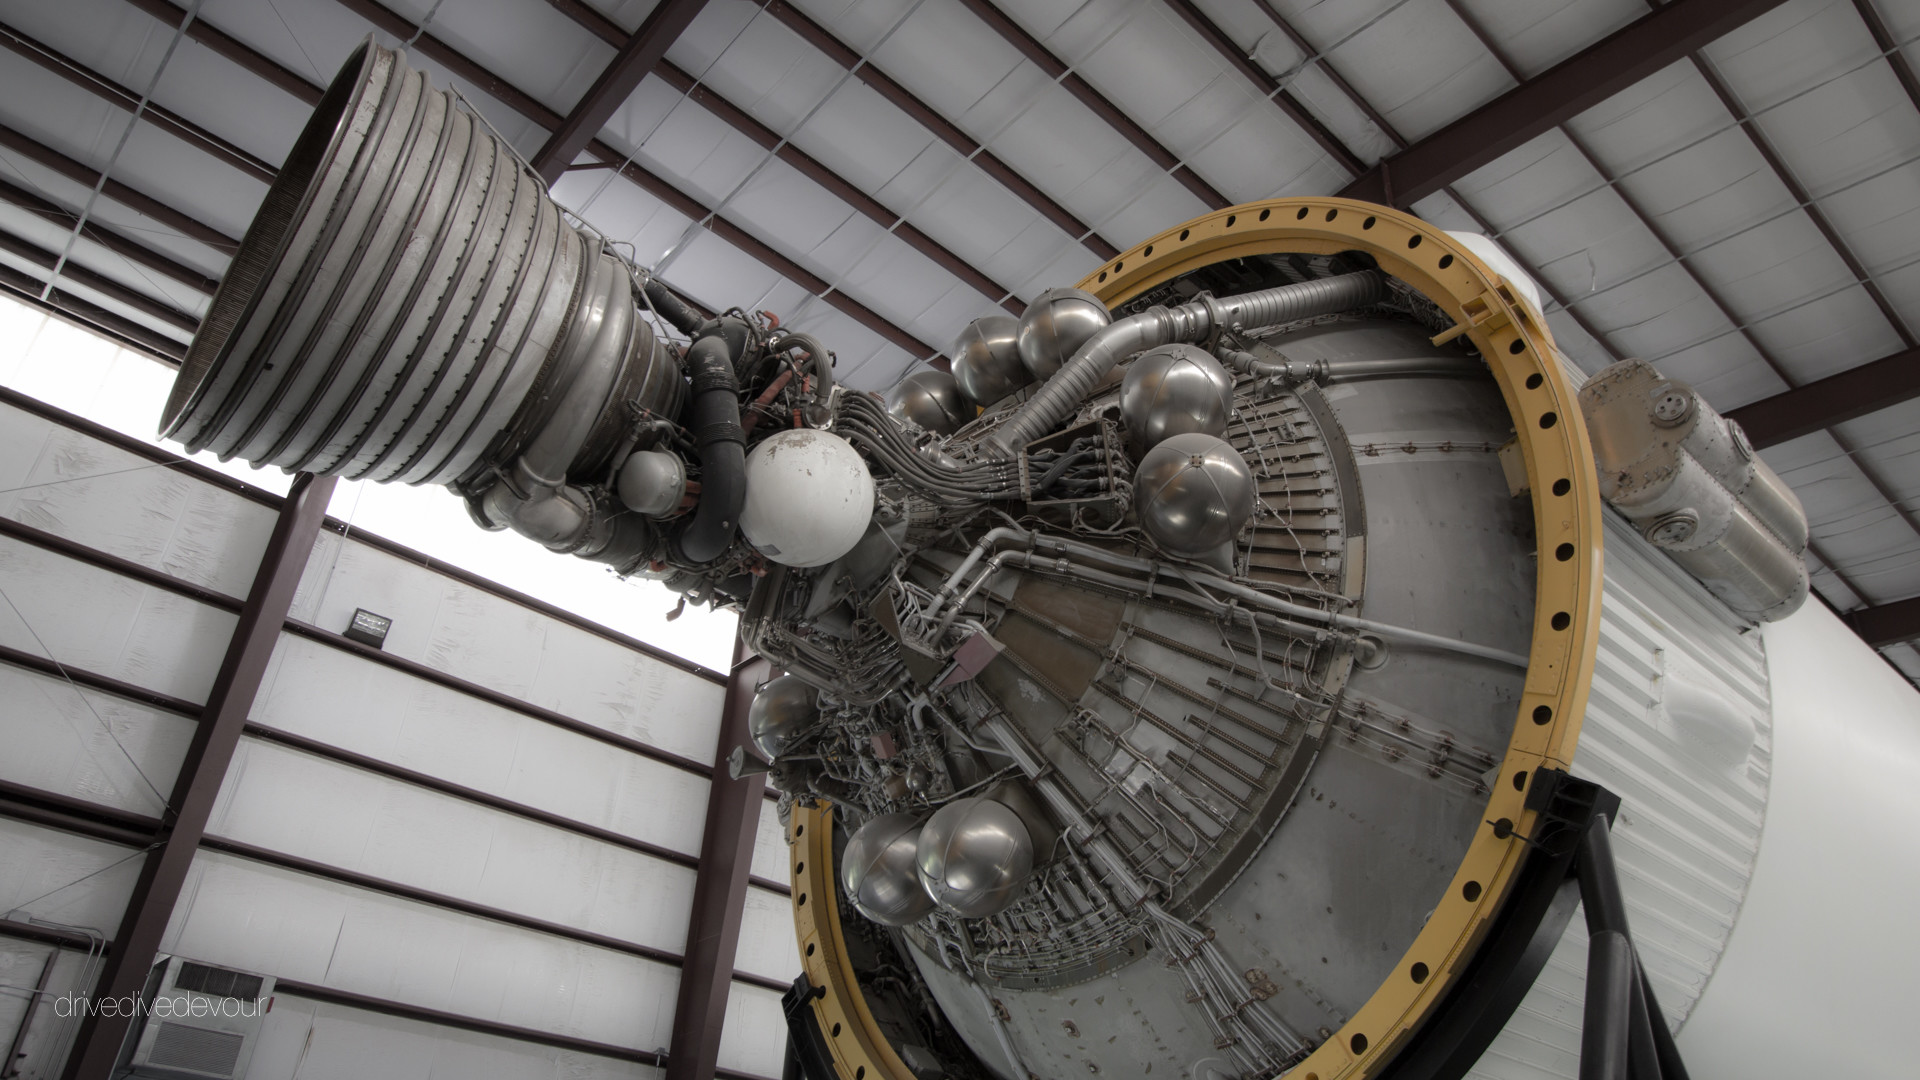 1920x1080 Saturn V engine, Johnson Space Center, Houston, TX